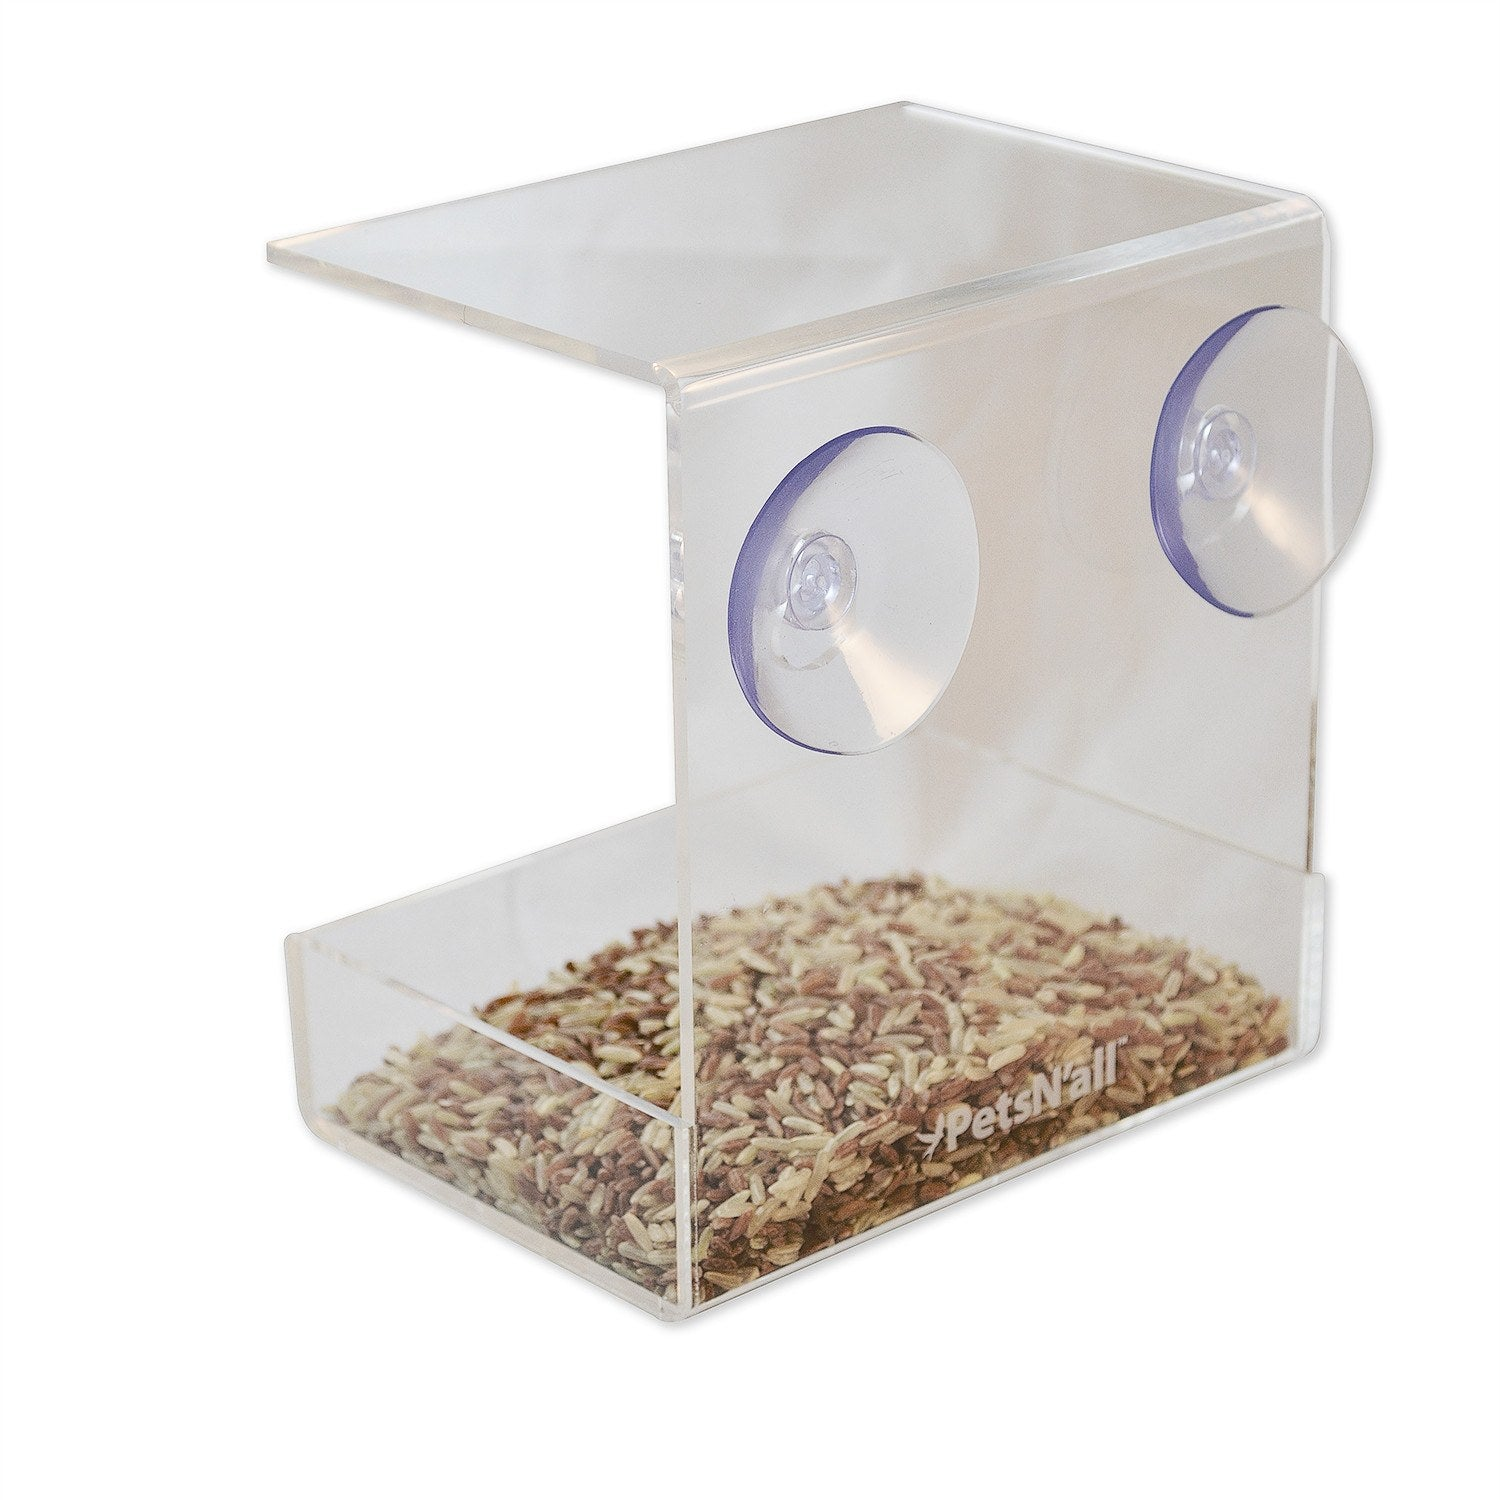 Window bird feeder cat -  Window Bird Feeder Big 1